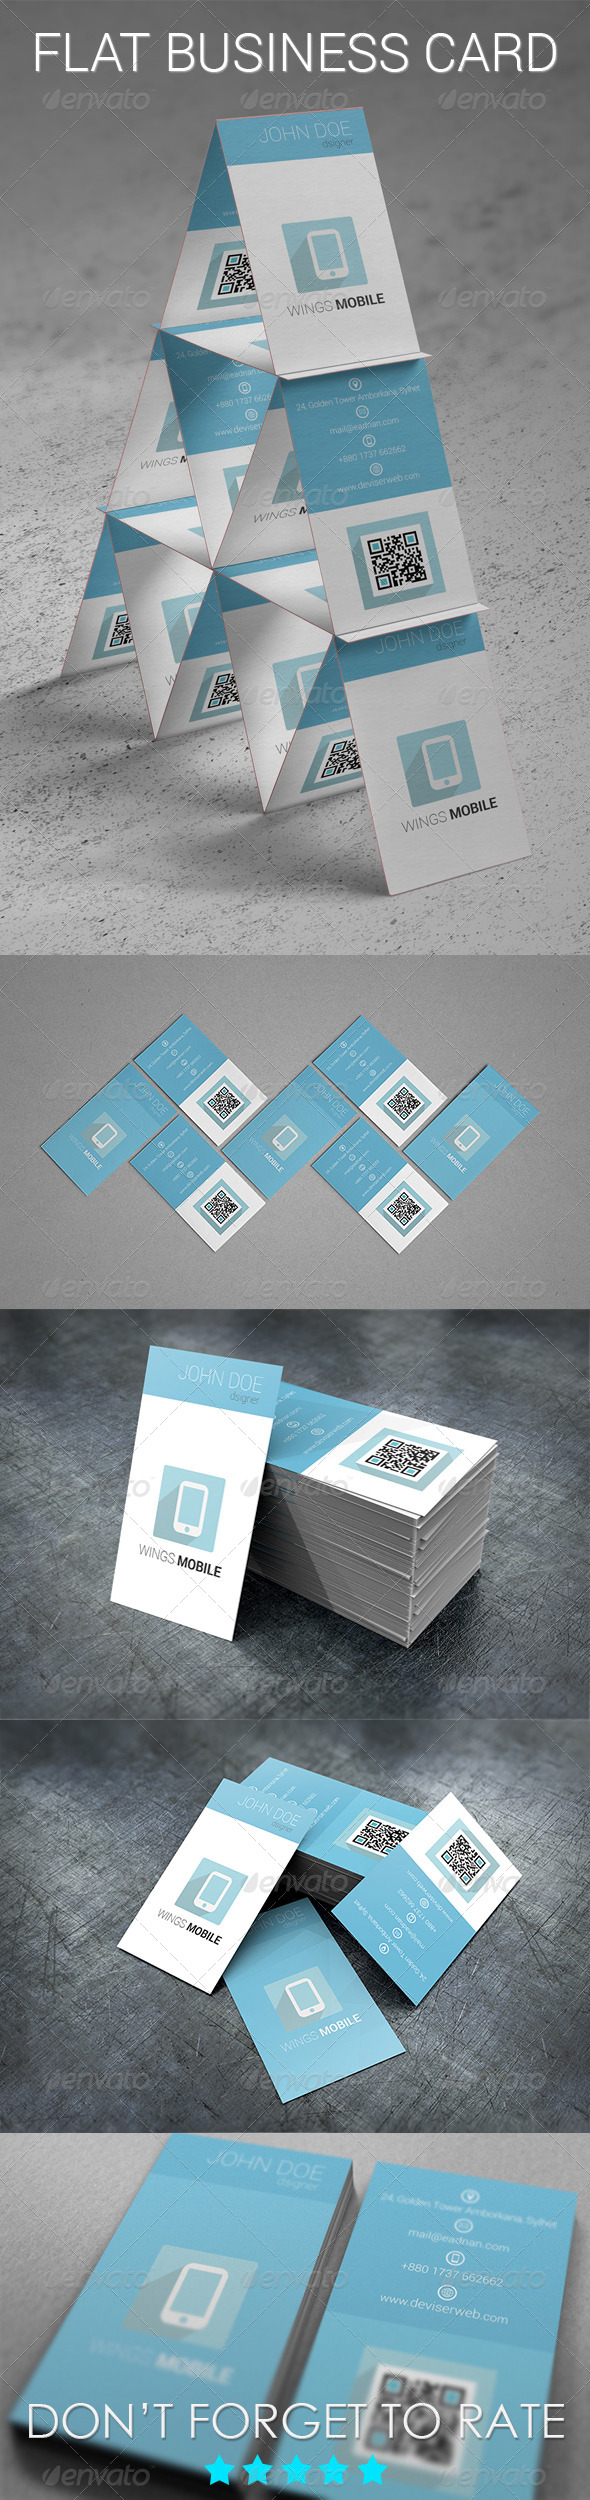 GraphicRiver Flat Business Card 5252193